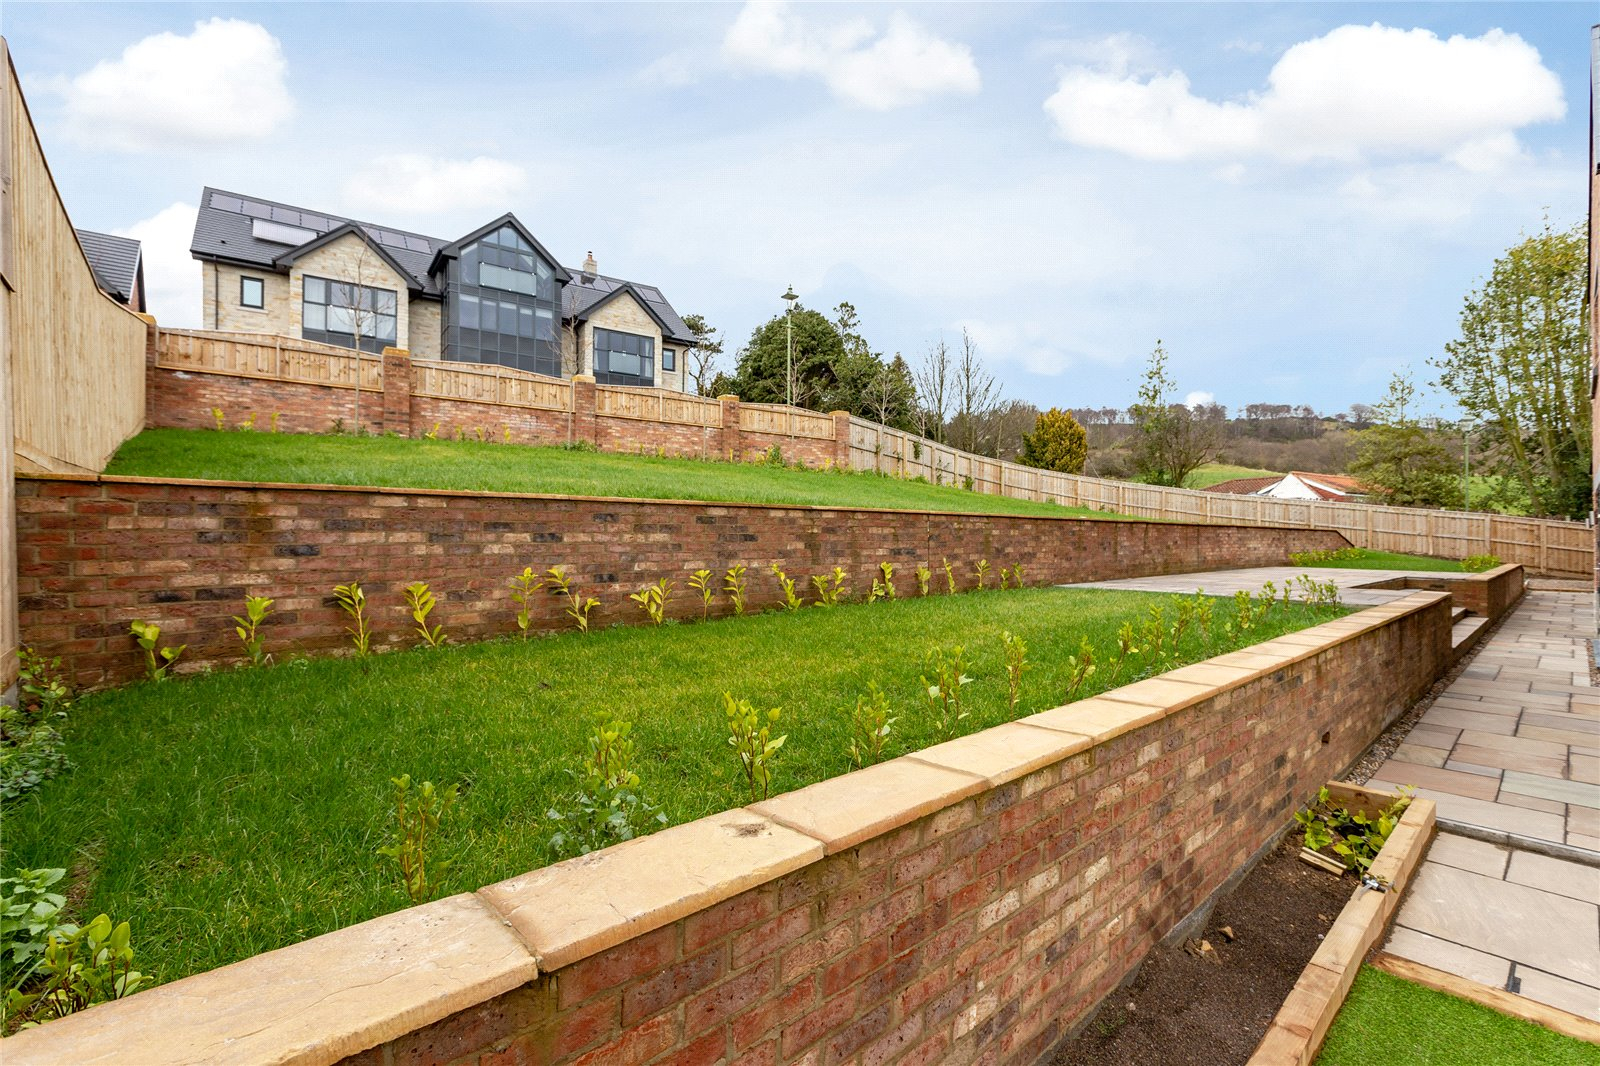 5 bed house for sale in Upsall Grange Gardens, Upsall  - Property Image 17